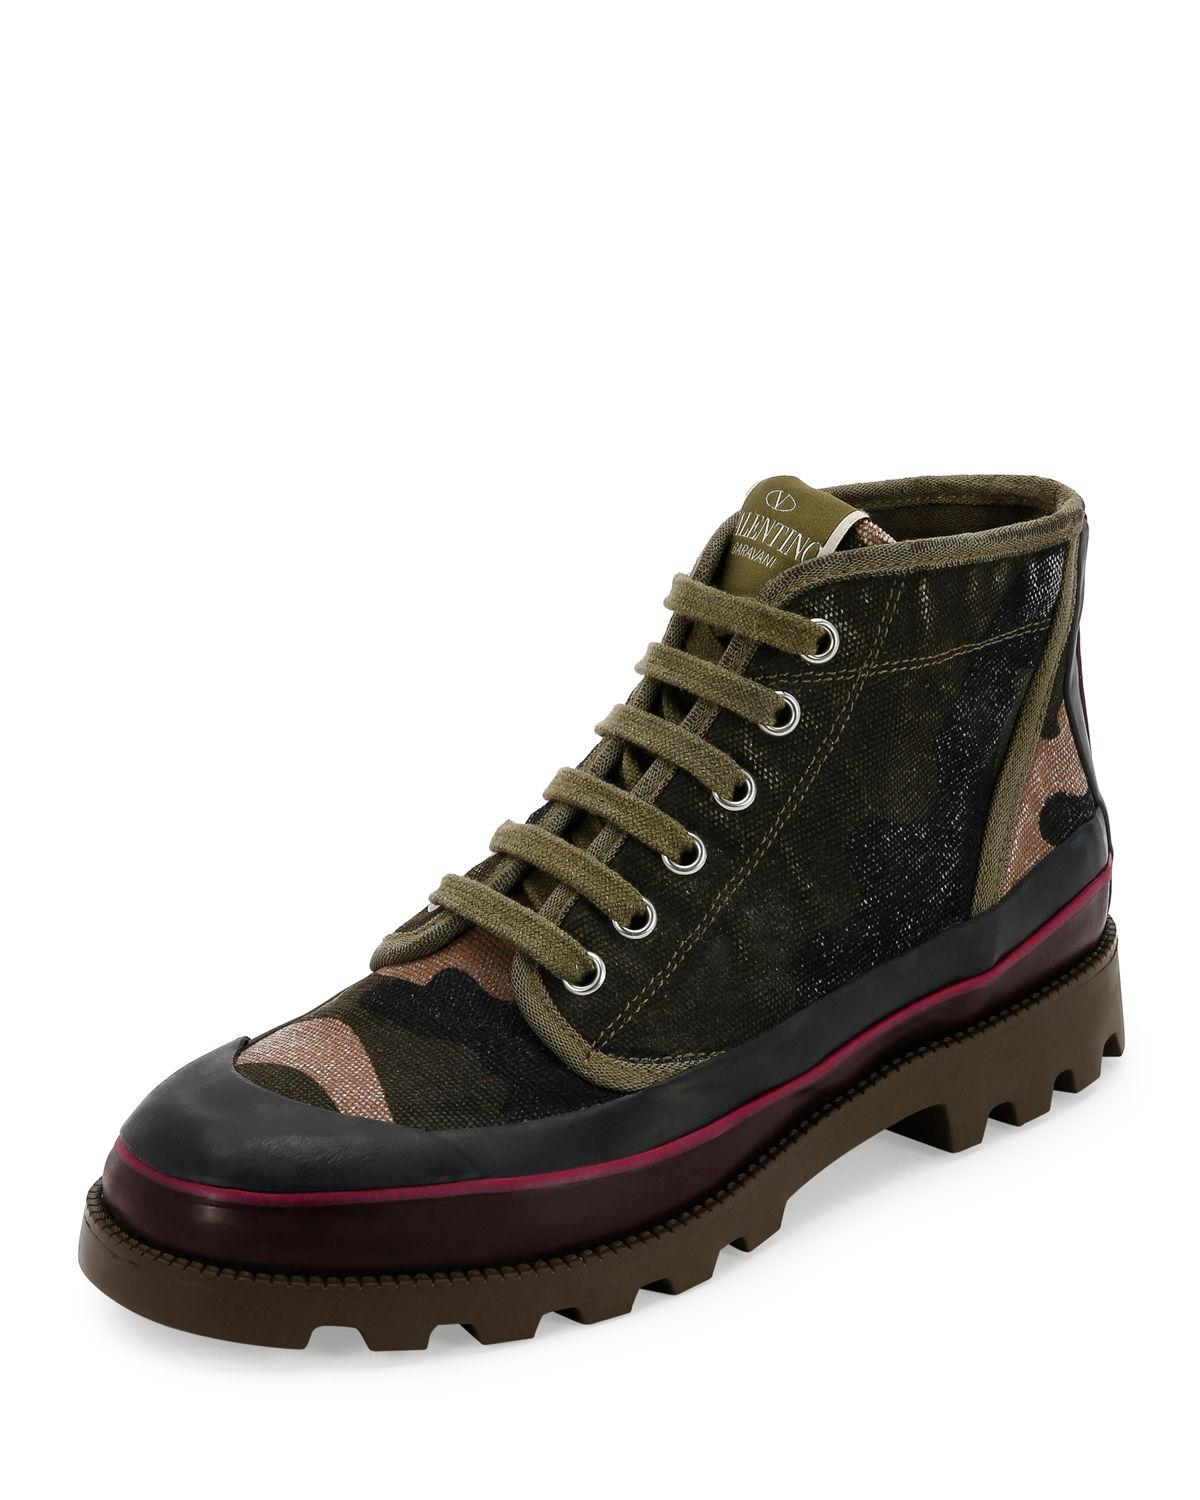 valentino camouflage canvas high top sneaker in green for men lyst. Black Bedroom Furniture Sets. Home Design Ideas